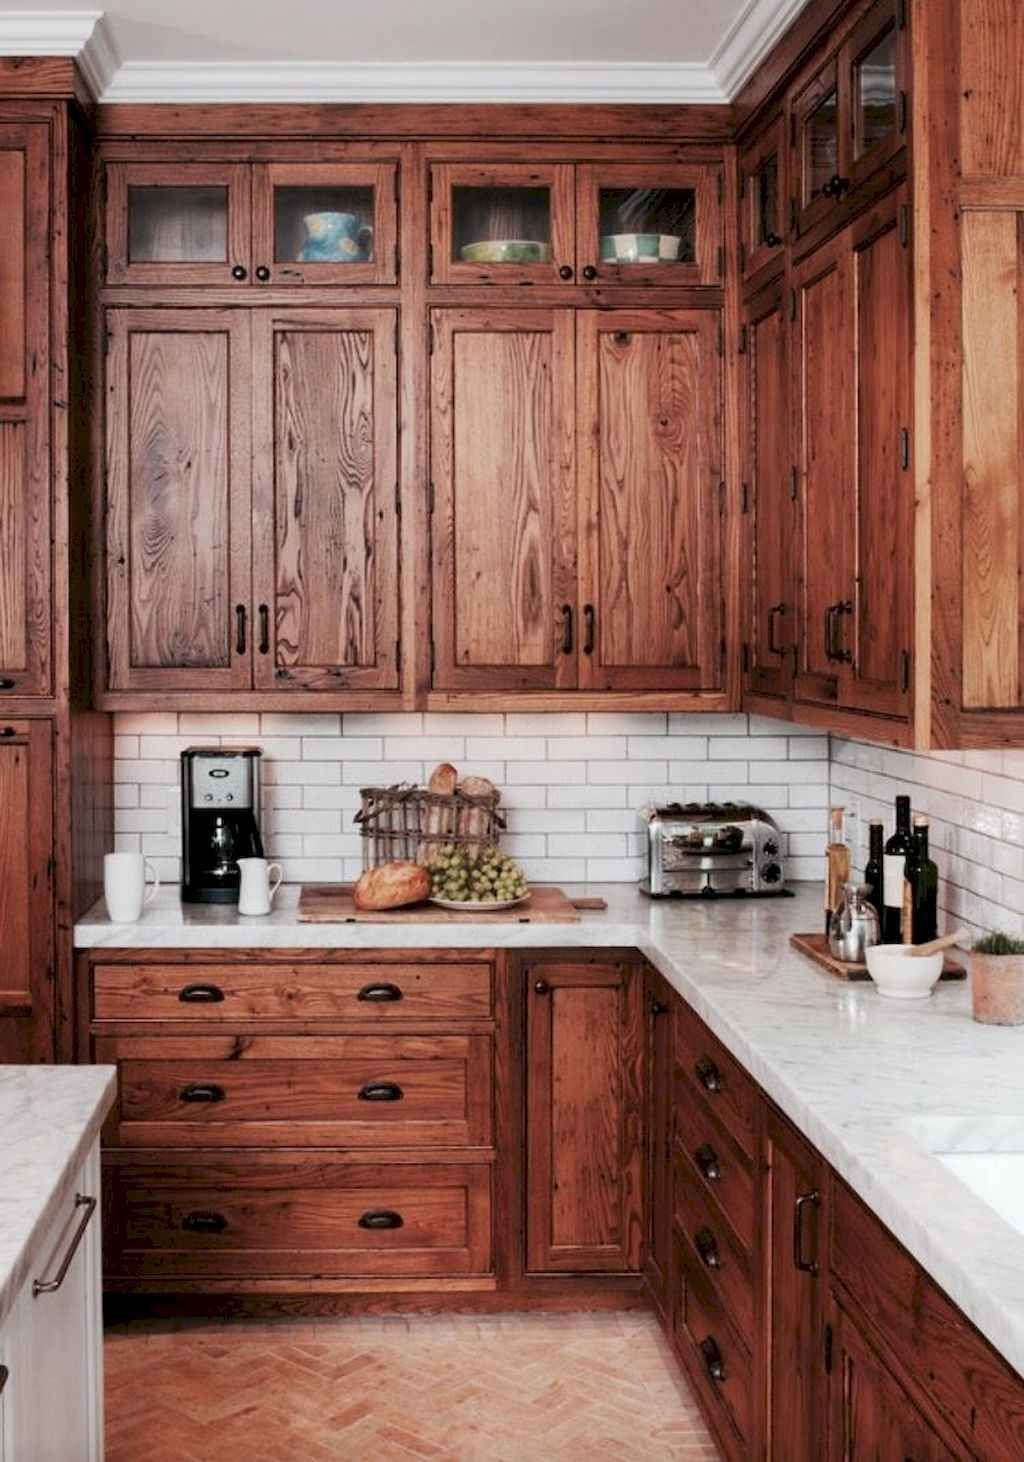 01 beautiful farmhouse kitchen cabinet makeover design ideas in 2020 home kitchens kitchen on farmhouse kitchen cabinets id=56983